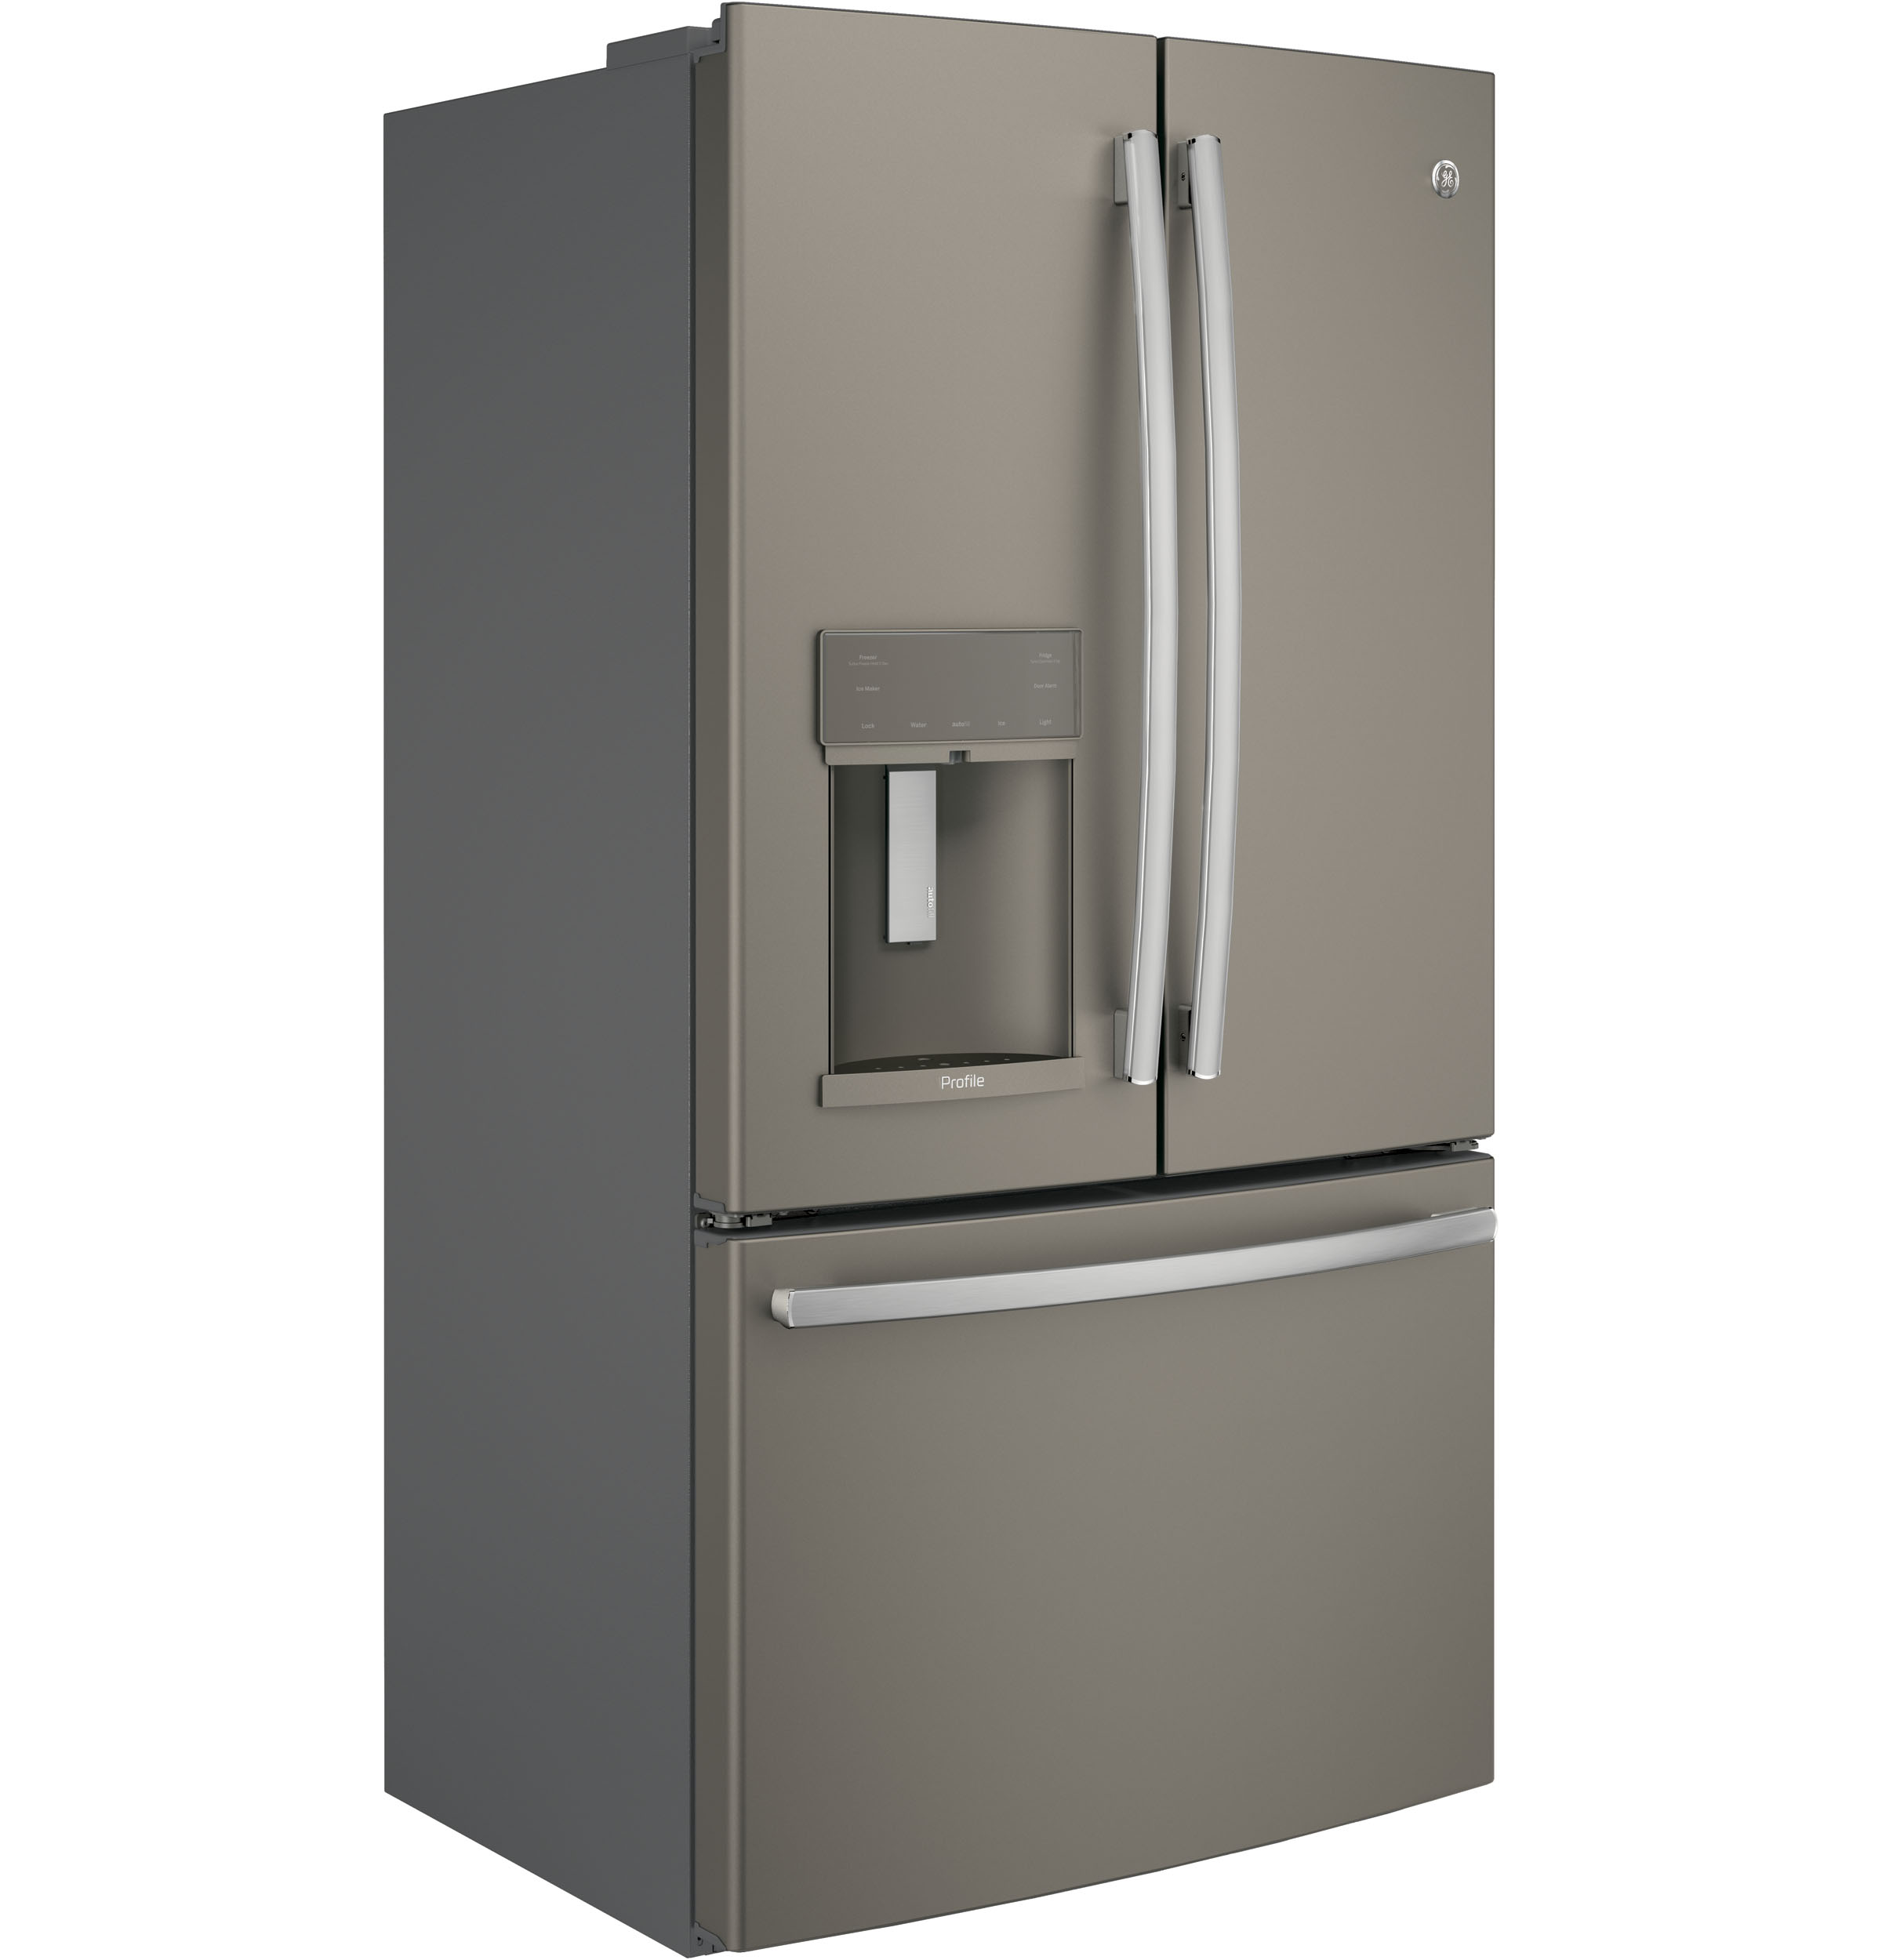 Model: PFE28KMKES | GE Profile™ Series ENERGY STAR® 27.8 Cu. Ft. French-Door Refrigerator with Hands-Free AutoFill